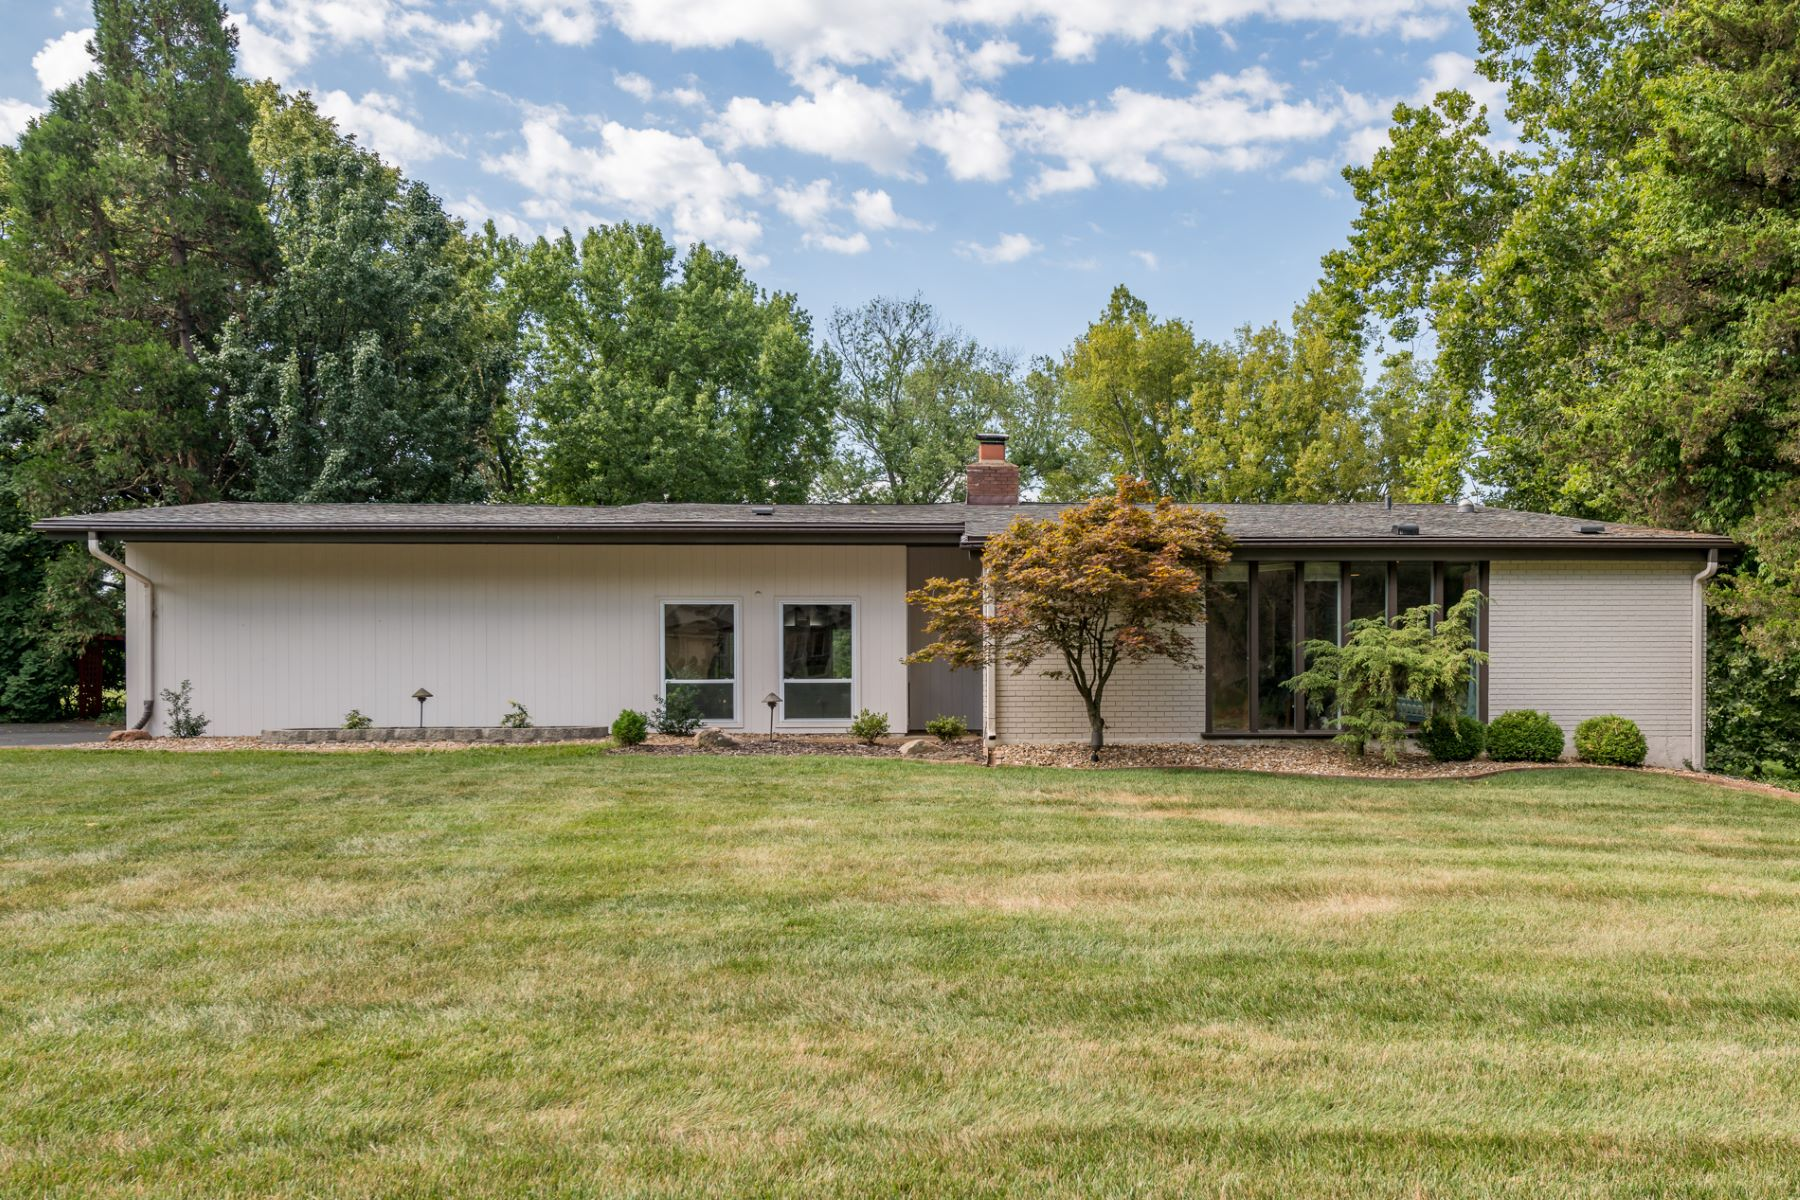 Single Family Home for Sale at Coulange Ct 12808 Coulange Ct Creve Coeur, Missouri 63141 United States